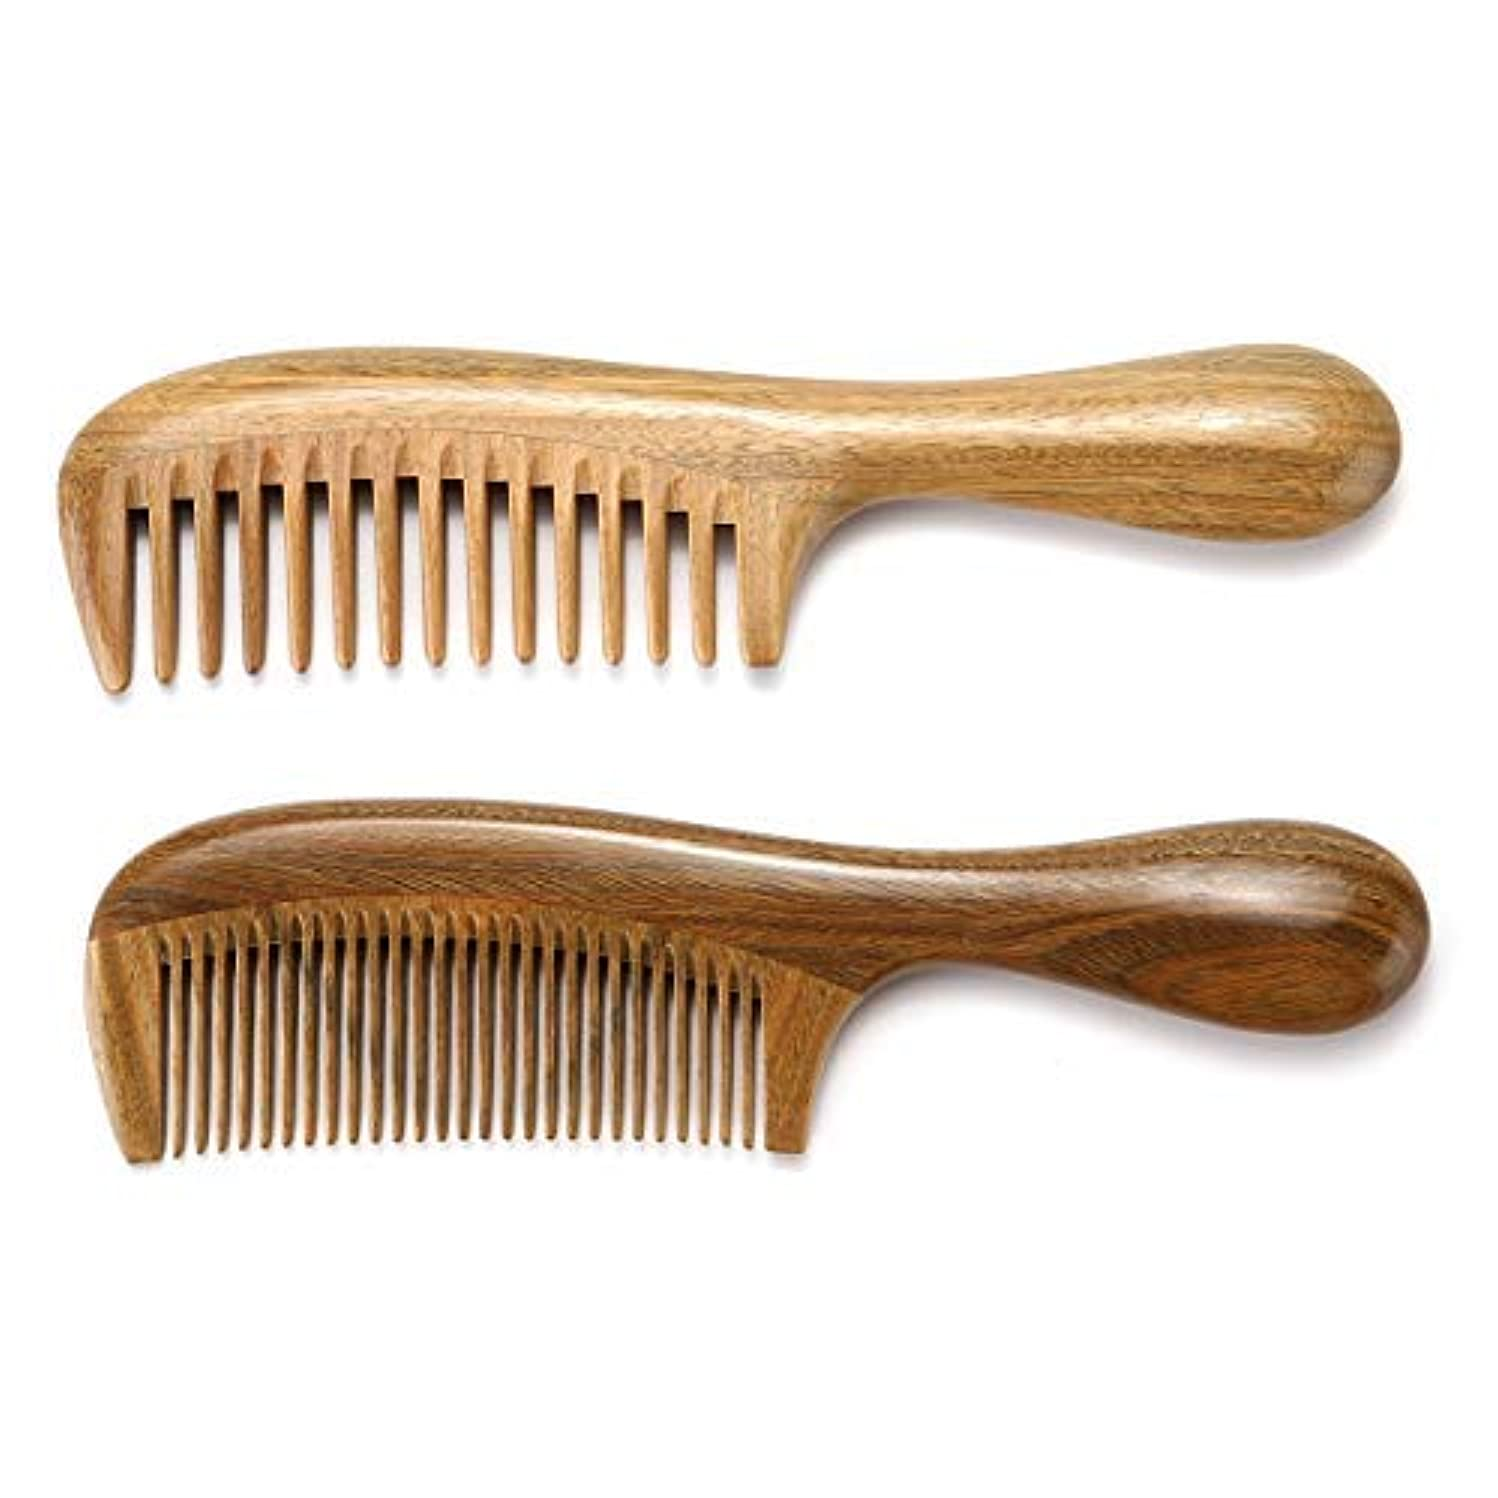 裁定実験室テーマHandmade Wooden Hair Comb Set Gift Box Natural Green Sandalwood Anti-Static Fine & Wide Tooth Hair Combs for Men...